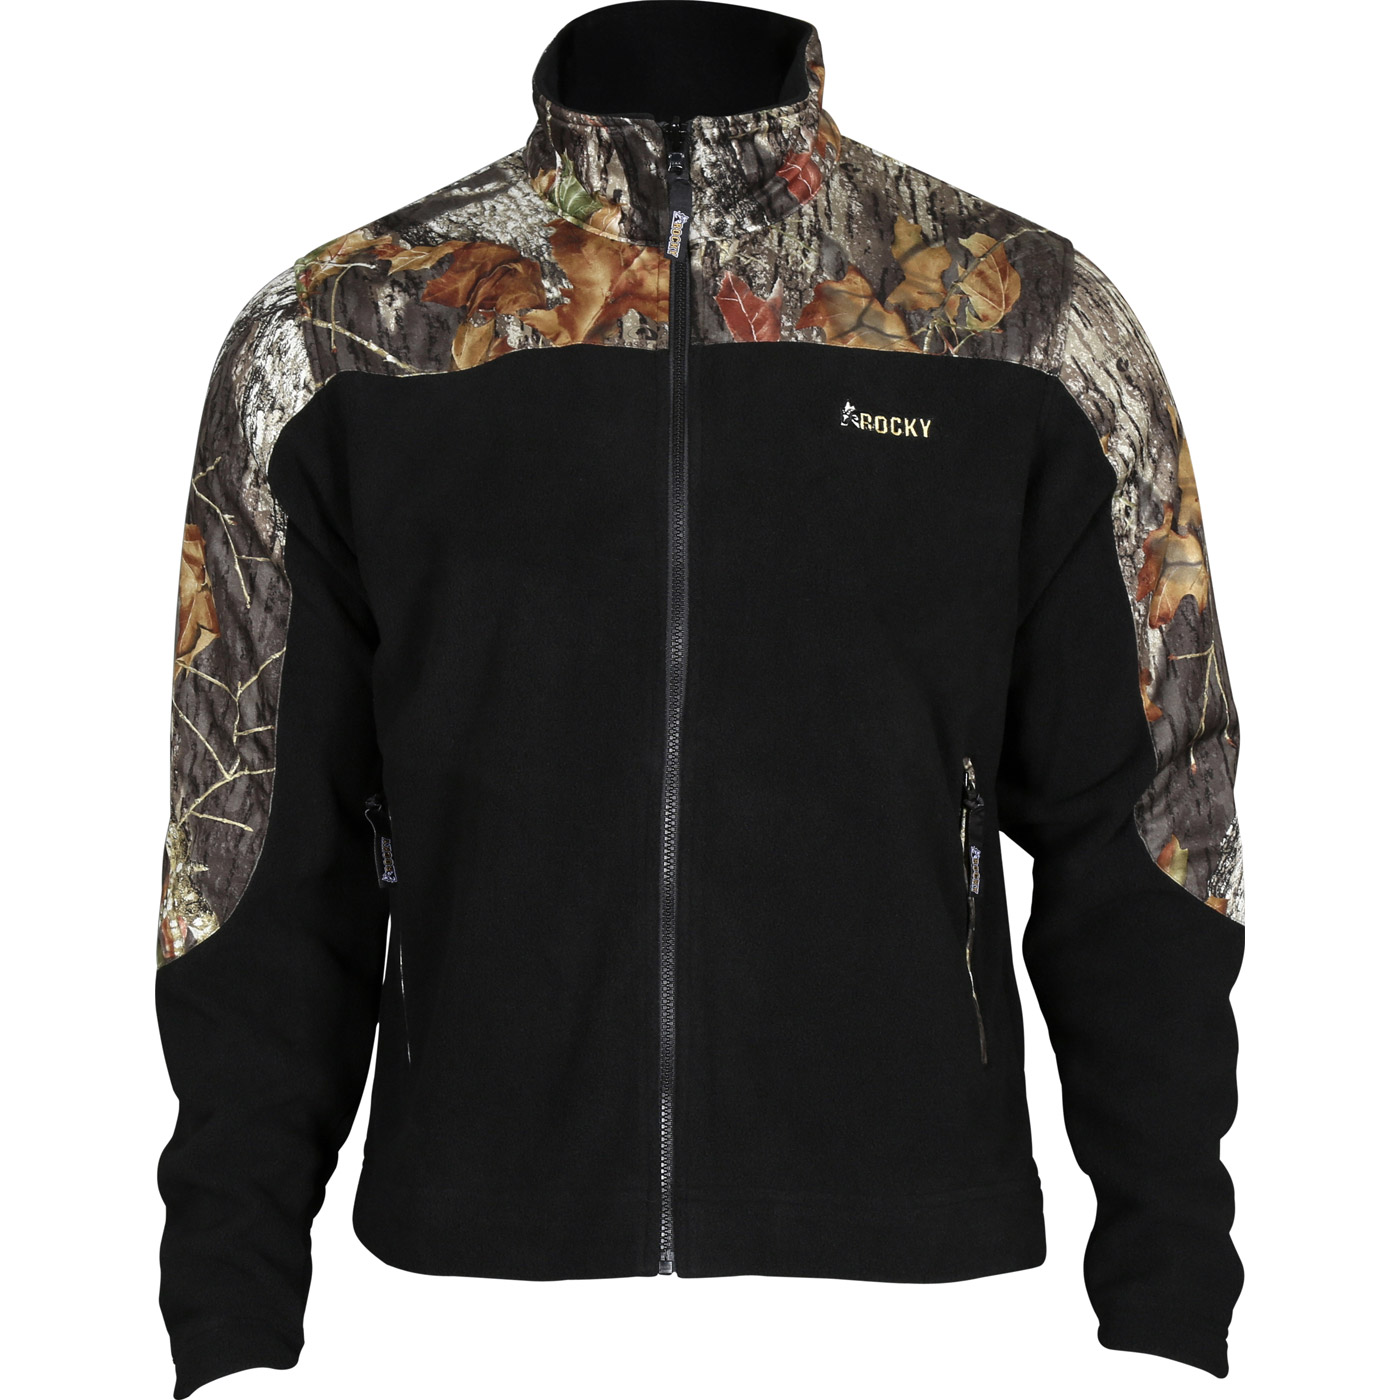 Rocky Casual Lifestyle Brown And Camo Fleece Jacket 609476